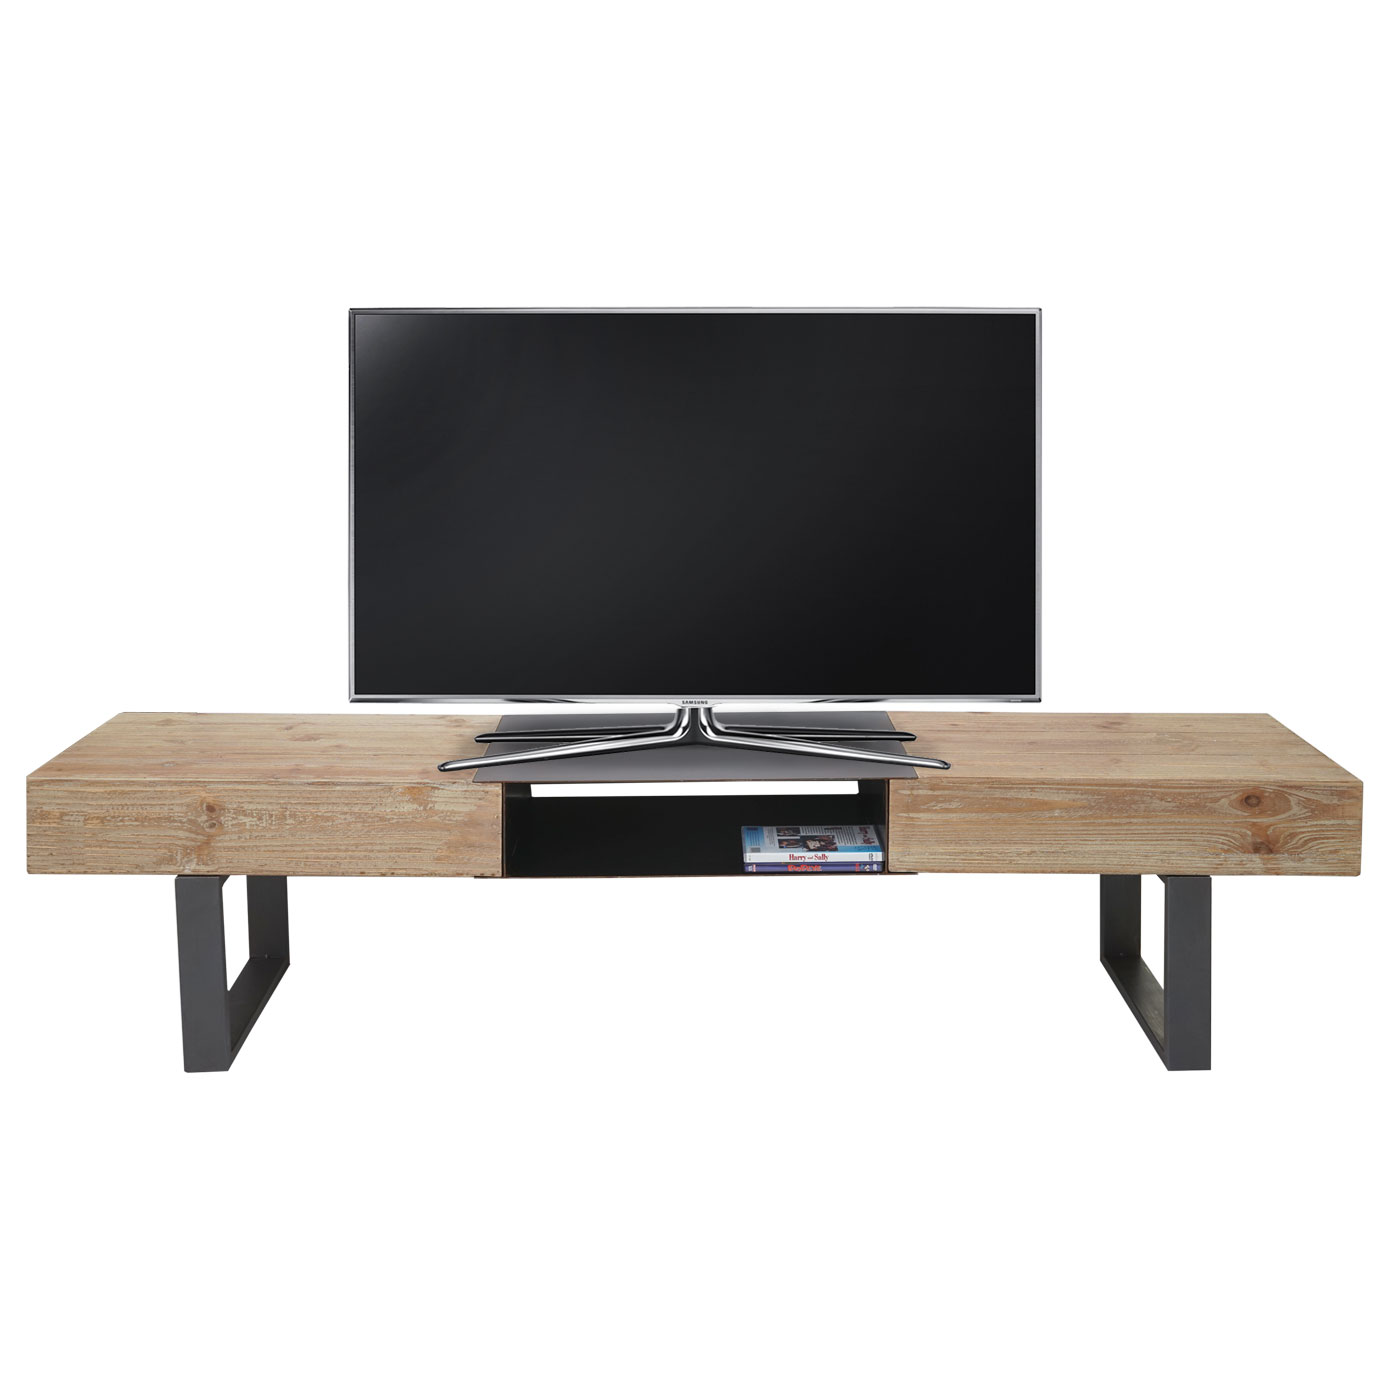 trendy tv rack holz top tvrack florens with tv rack holz with tv regal holz